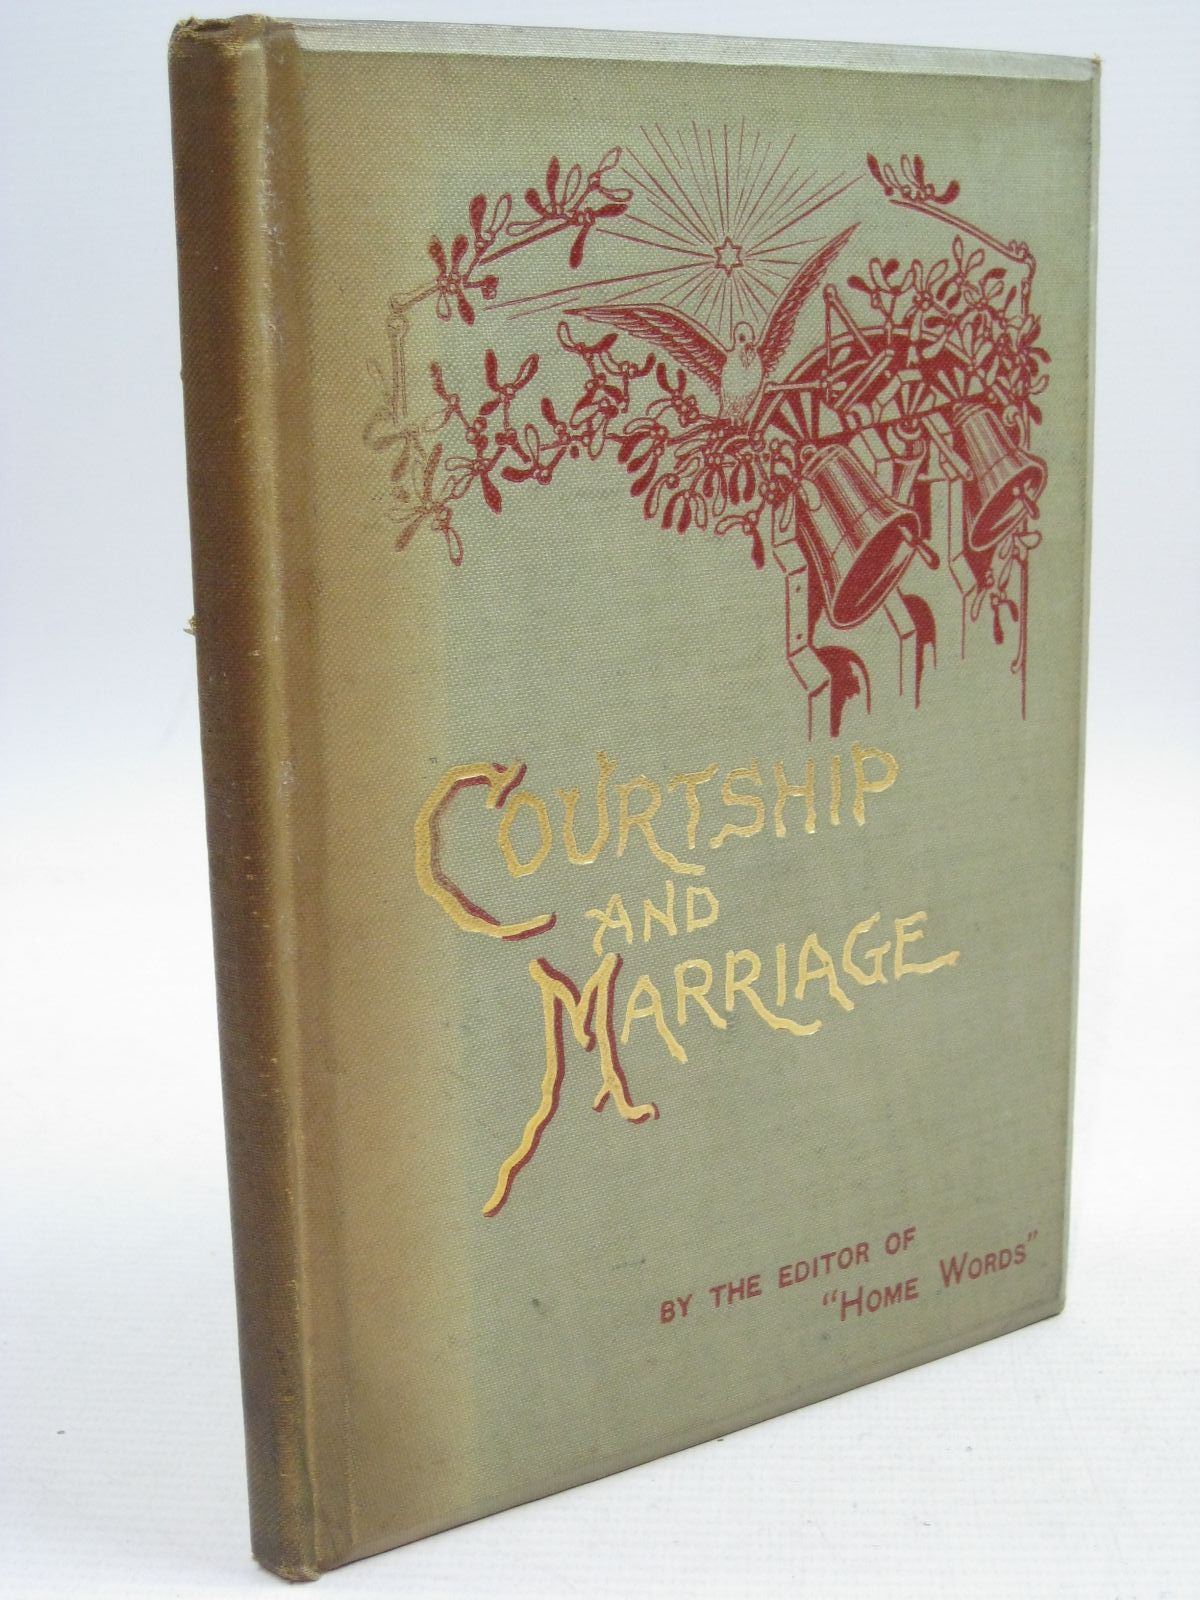 Photo of COURTSHIP AND MARRIAGE written by Bullock, Charles published by Home Words Publishing Office (STOCK CODE: 1505210)  for sale by Stella & Rose's Books